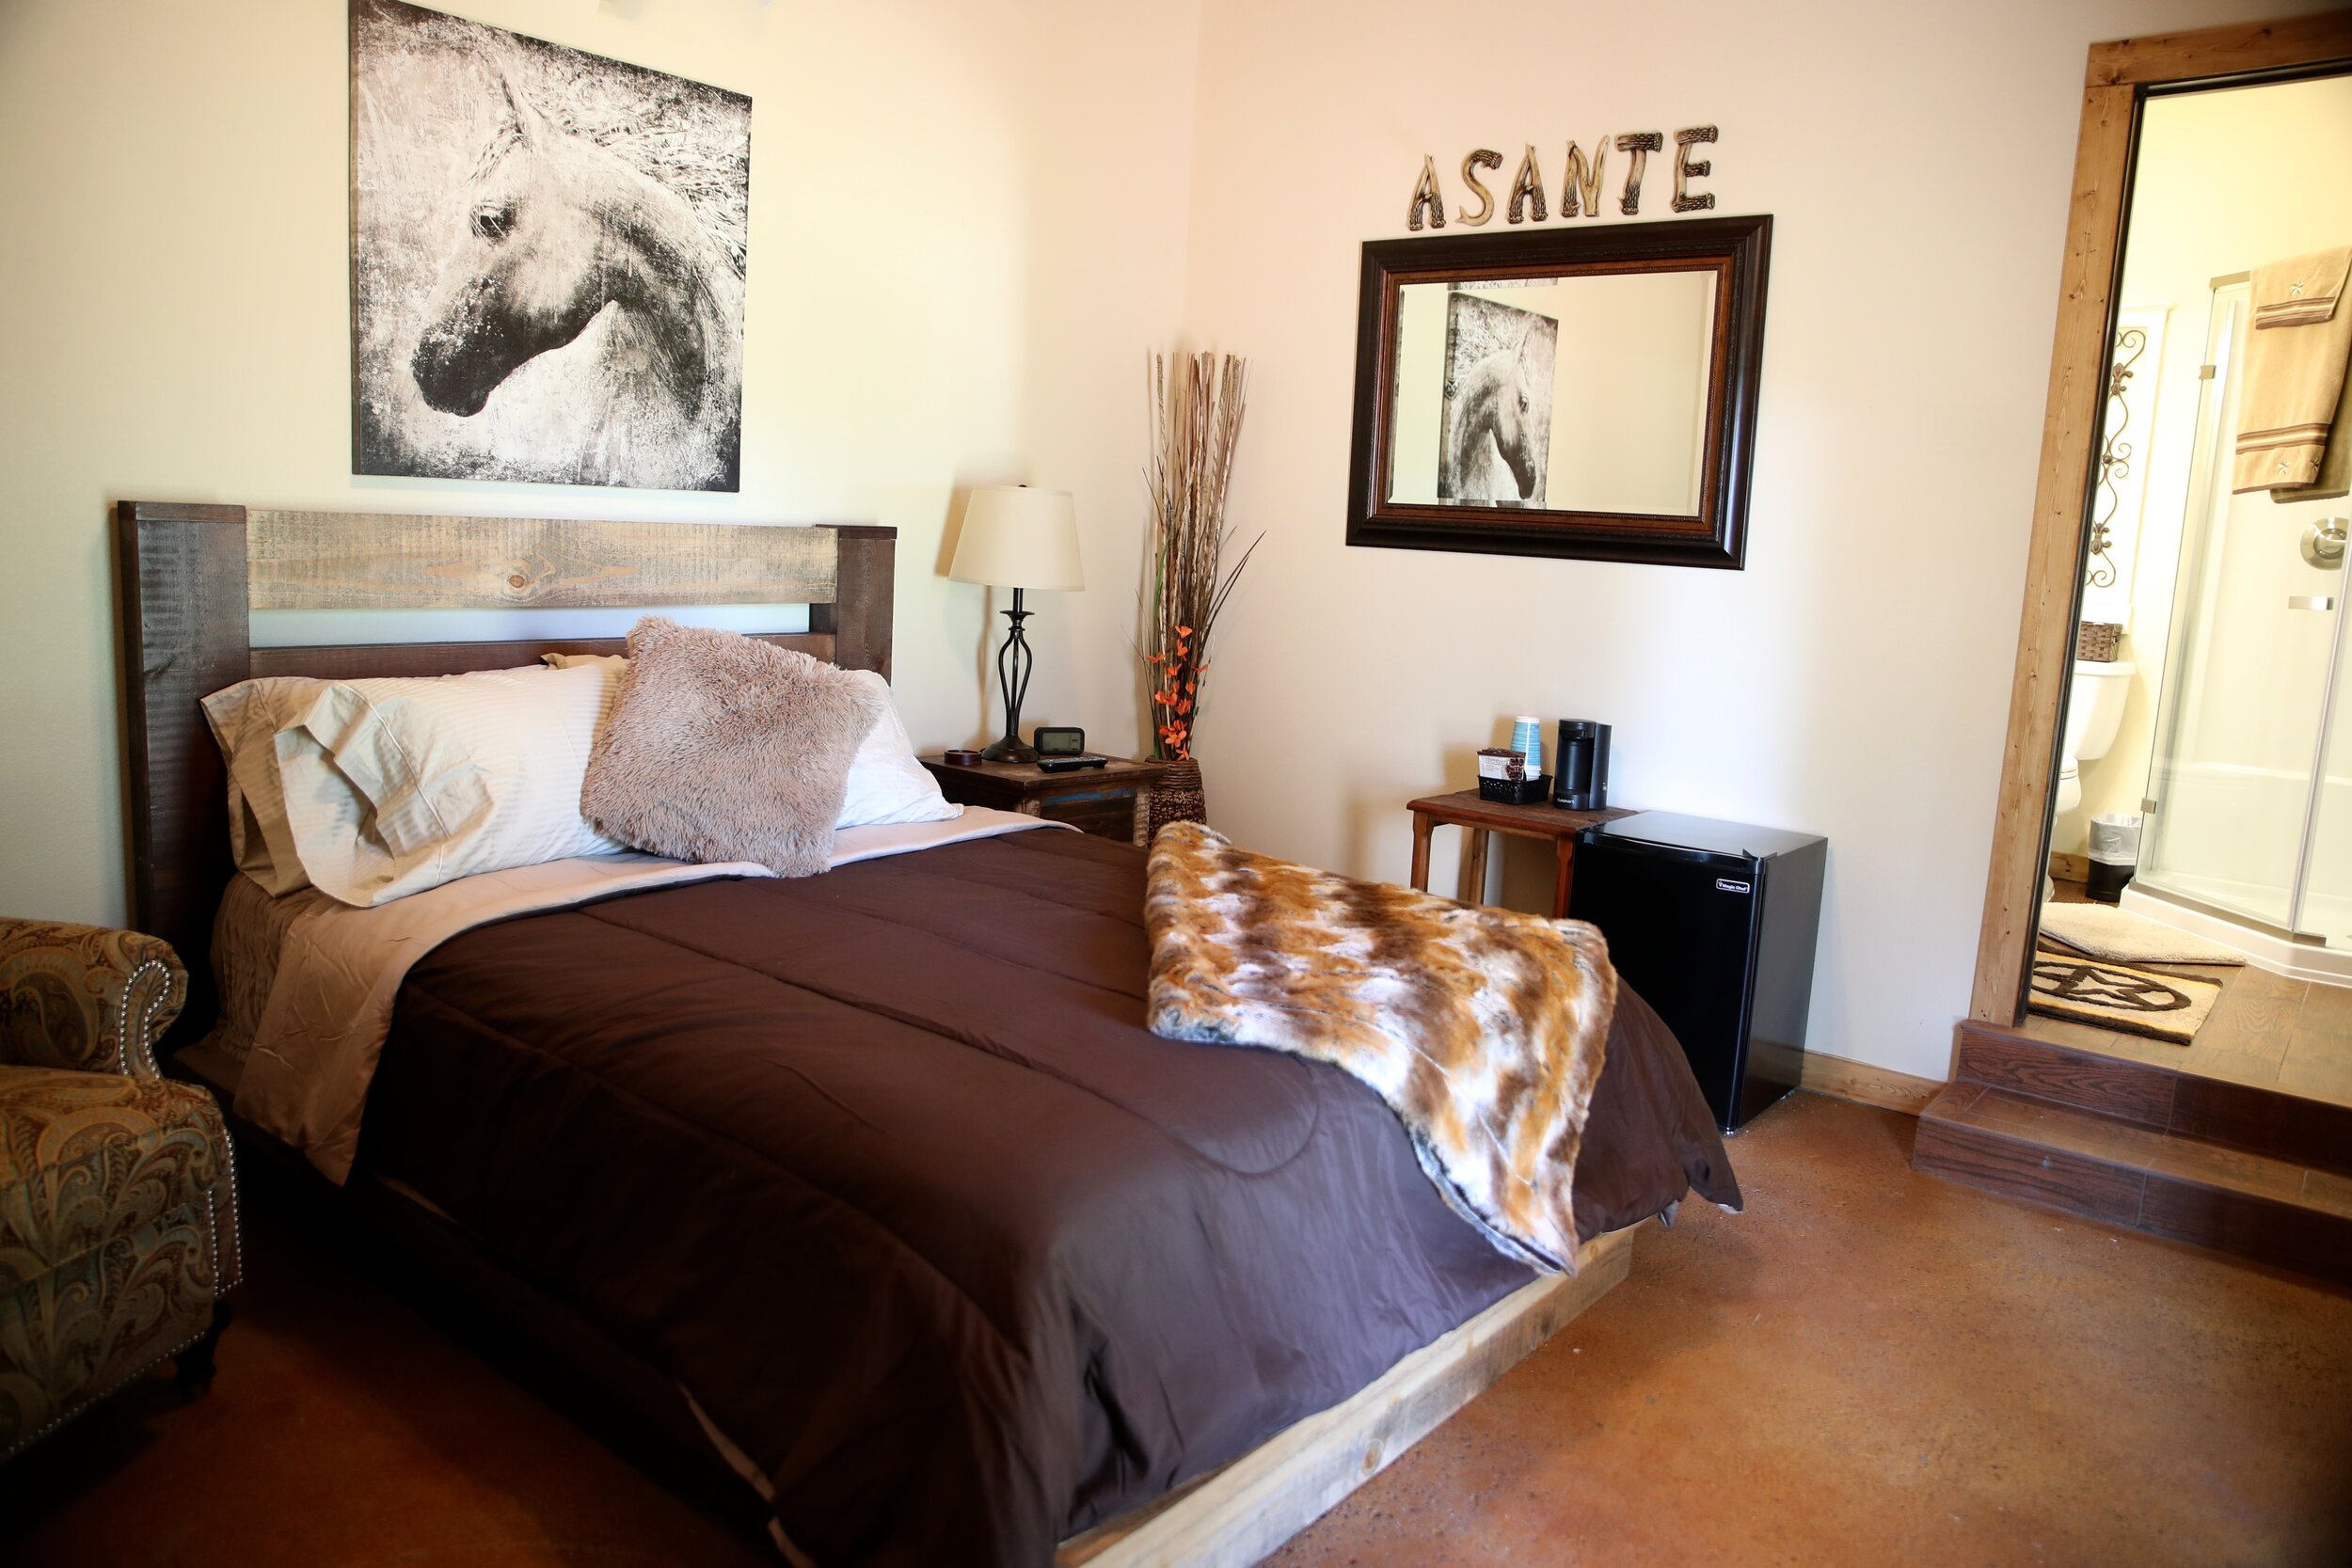 "The Vaquero Room - ""Vaquero"" means a cowboy or cattle driver in Spanish. This room can accommodate 2 guests.The Vaquero Room includes a plush queen bed with touches of equine decor, private walk in bathroom with glass shower, mini refrigerator, cable & internet.Pricing Starting At $ 170 a night"